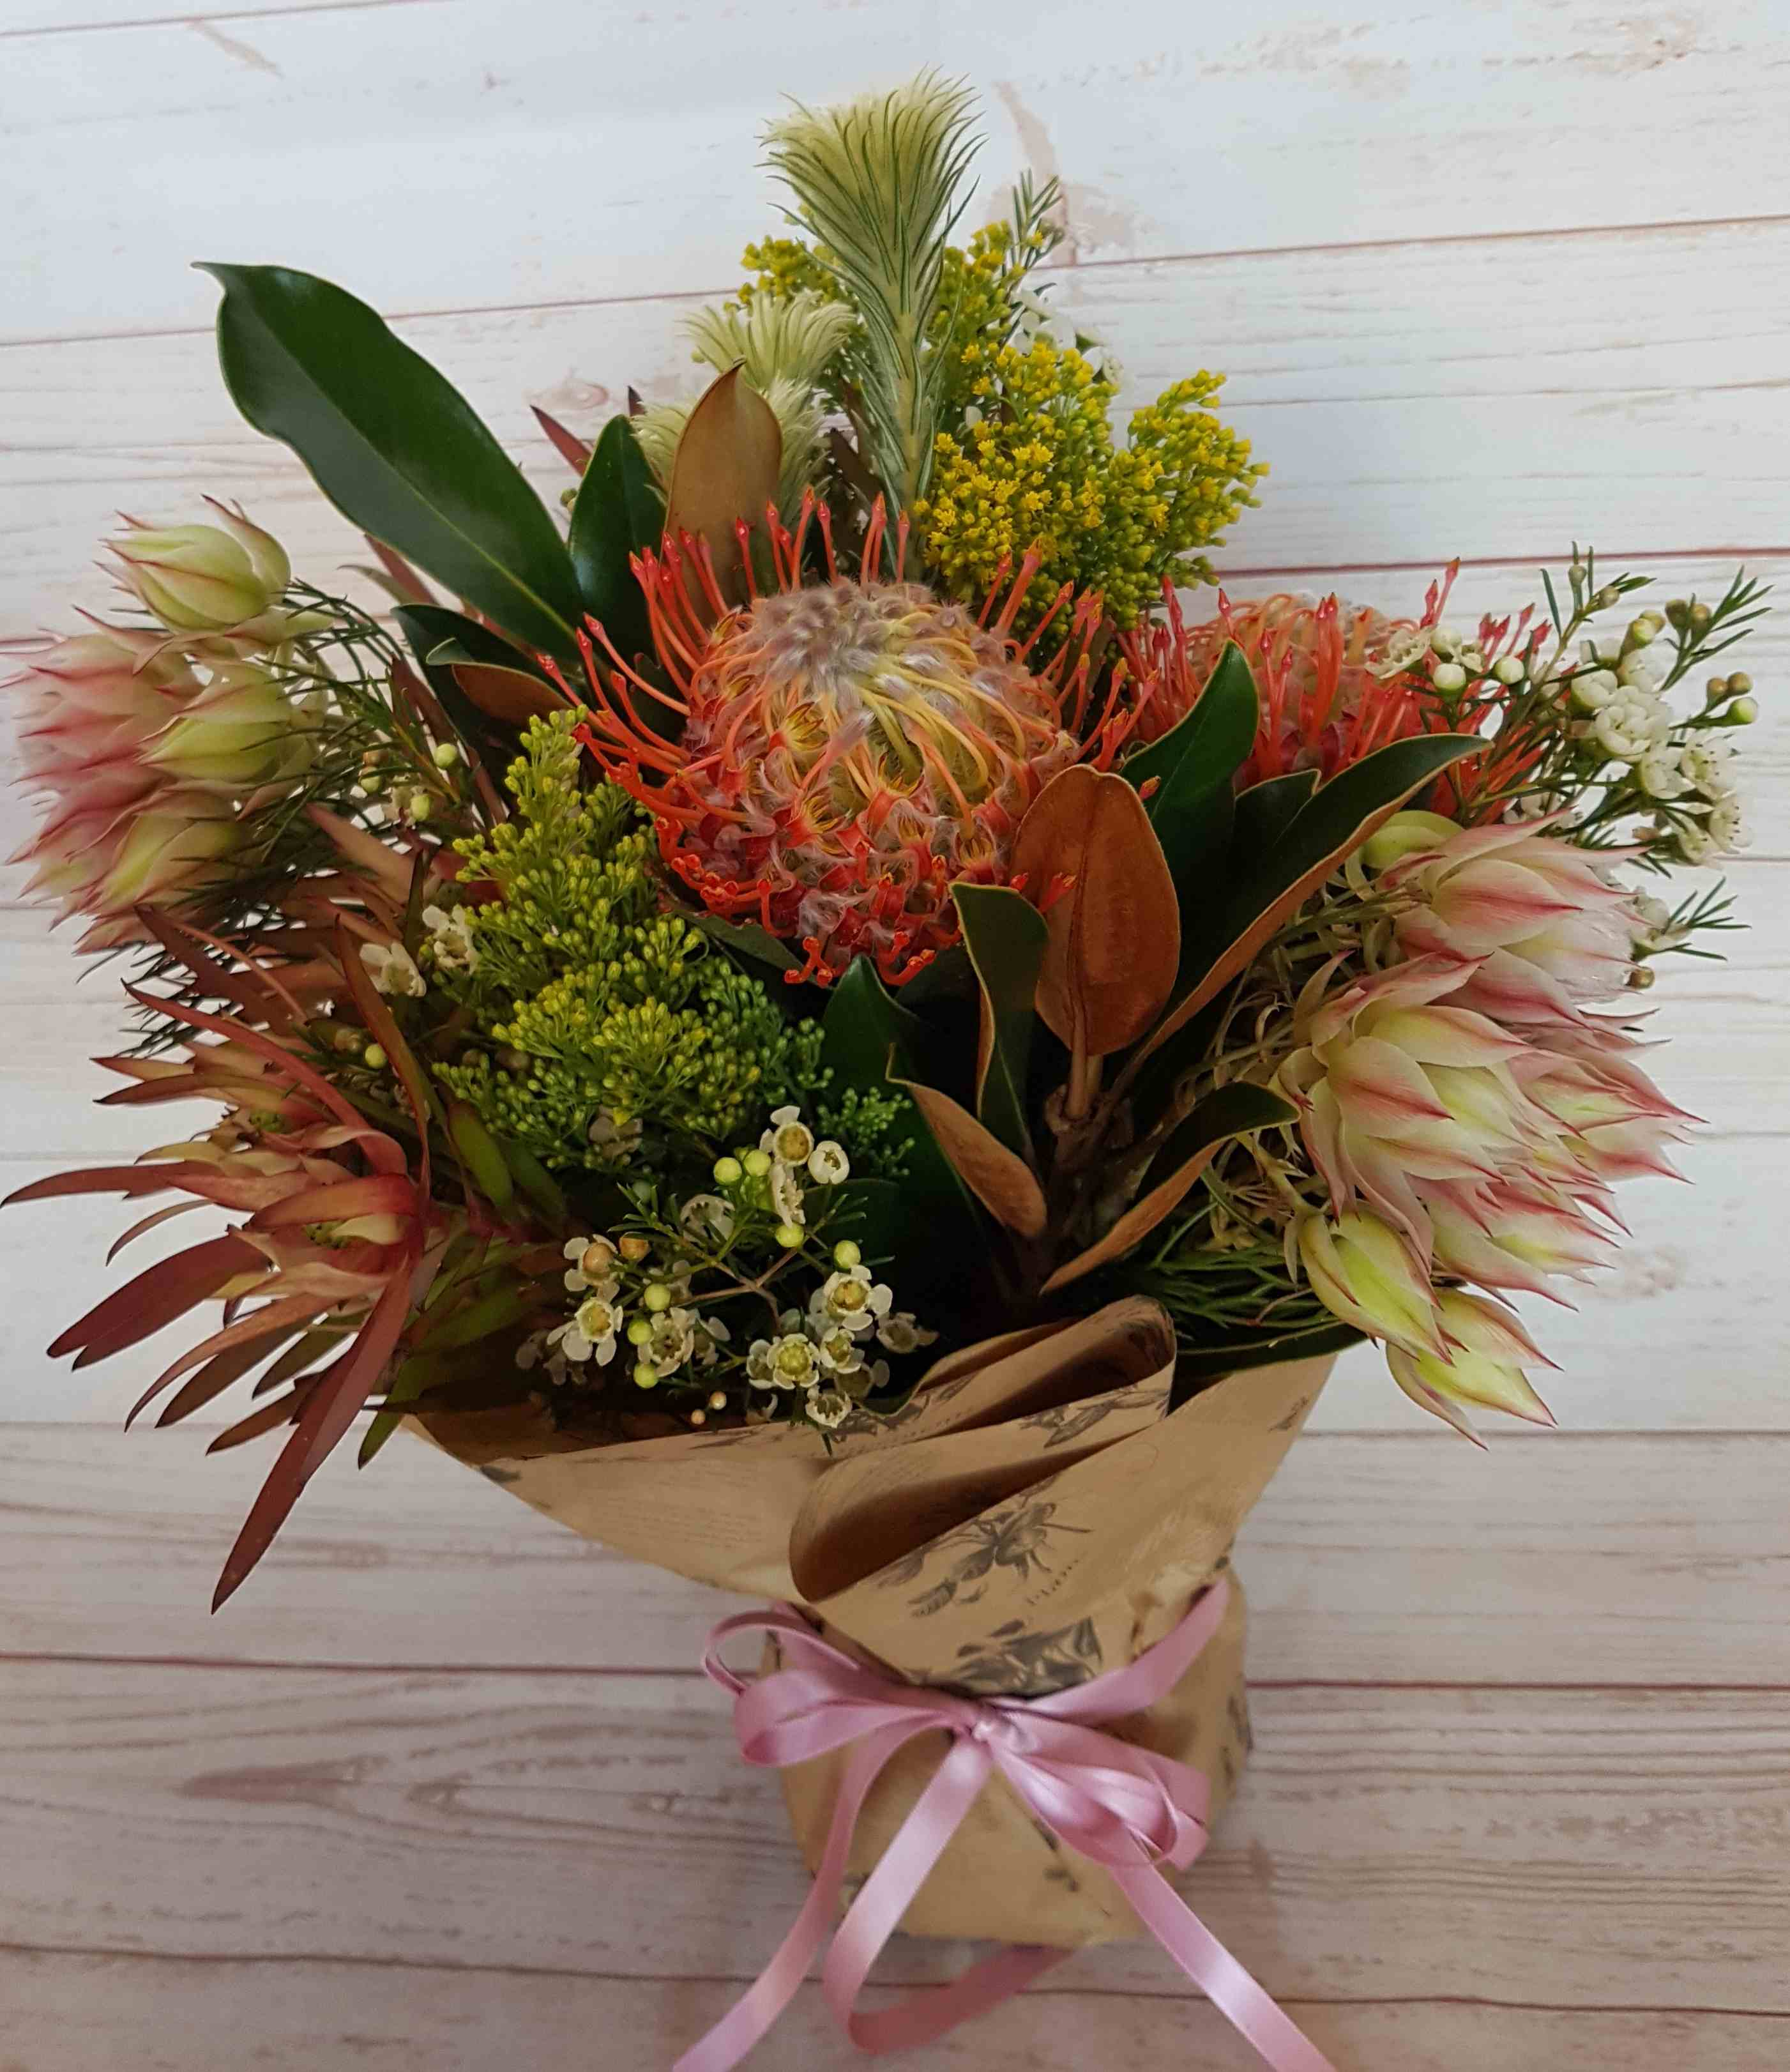 This native arrangement is suitable for a nursing home or hospital where space is limited.  The blooms are in water so less care is required by nursing staff, the natives are longer lasting, but give a beautiful focal point for someone convalescing.